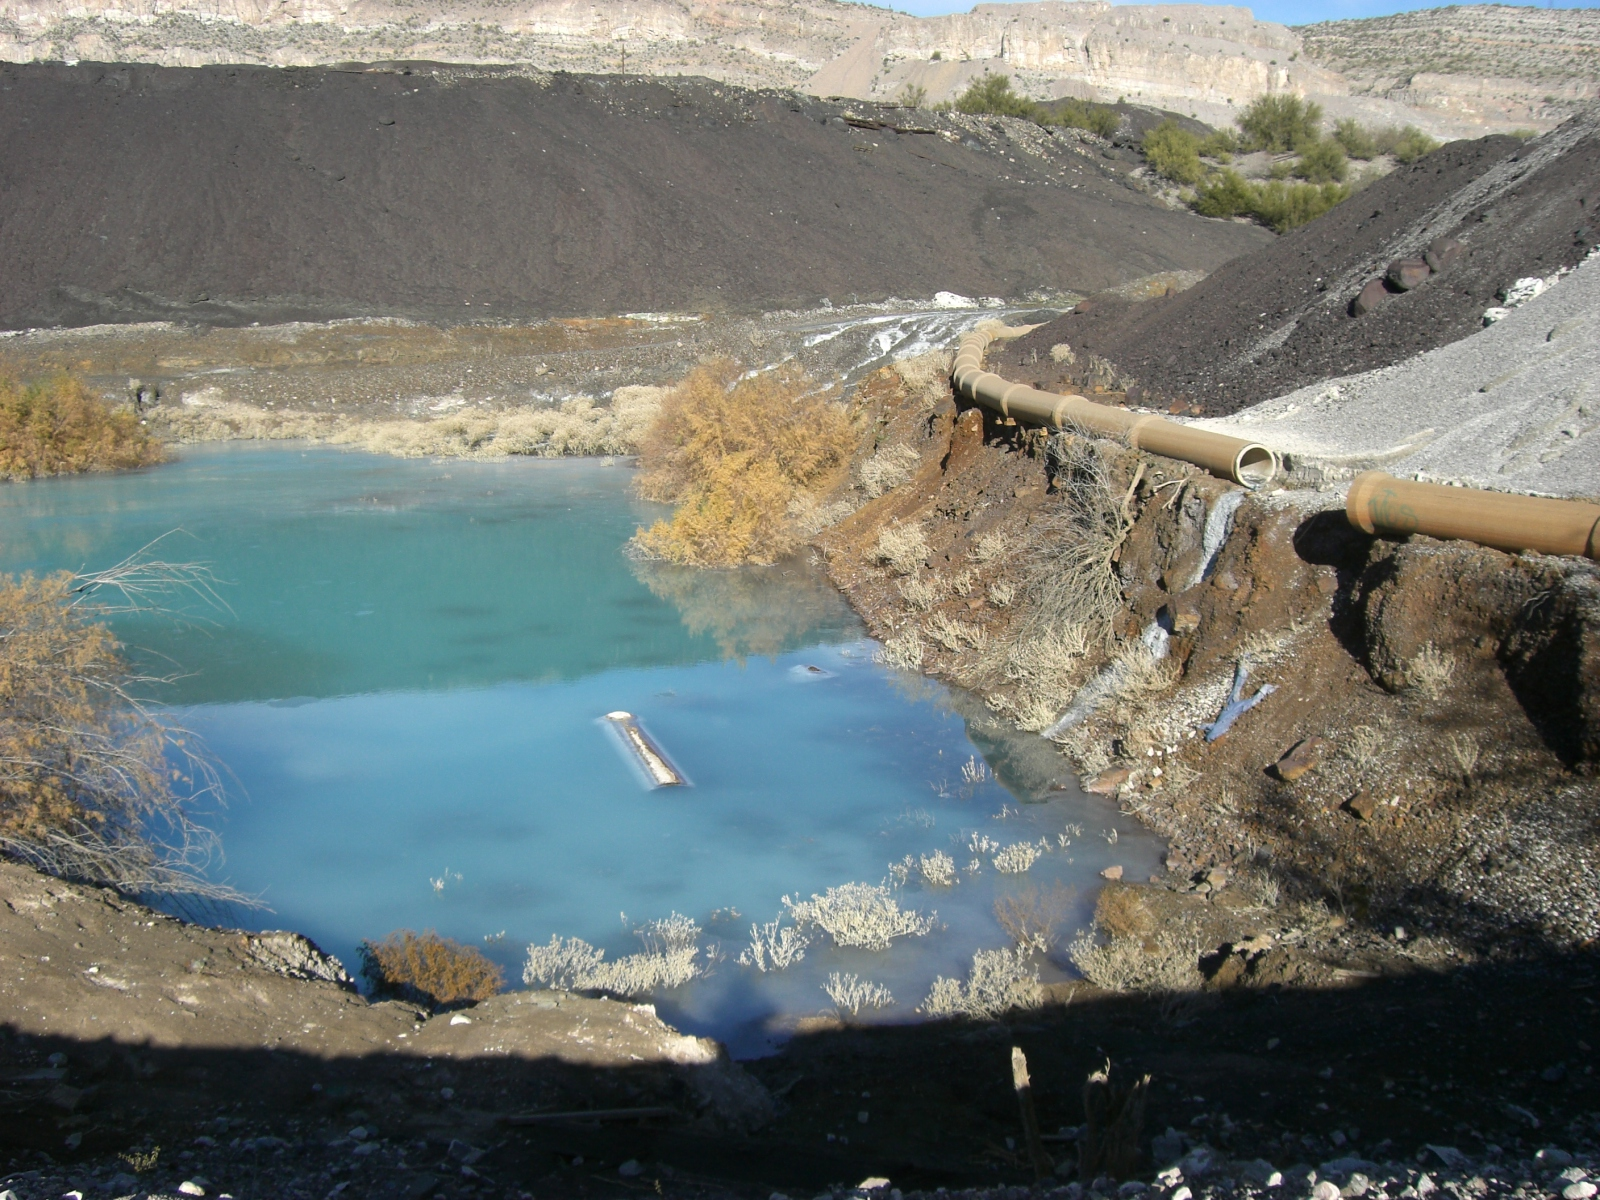 Hayden, Az: Asarco waste pond with broken pipe